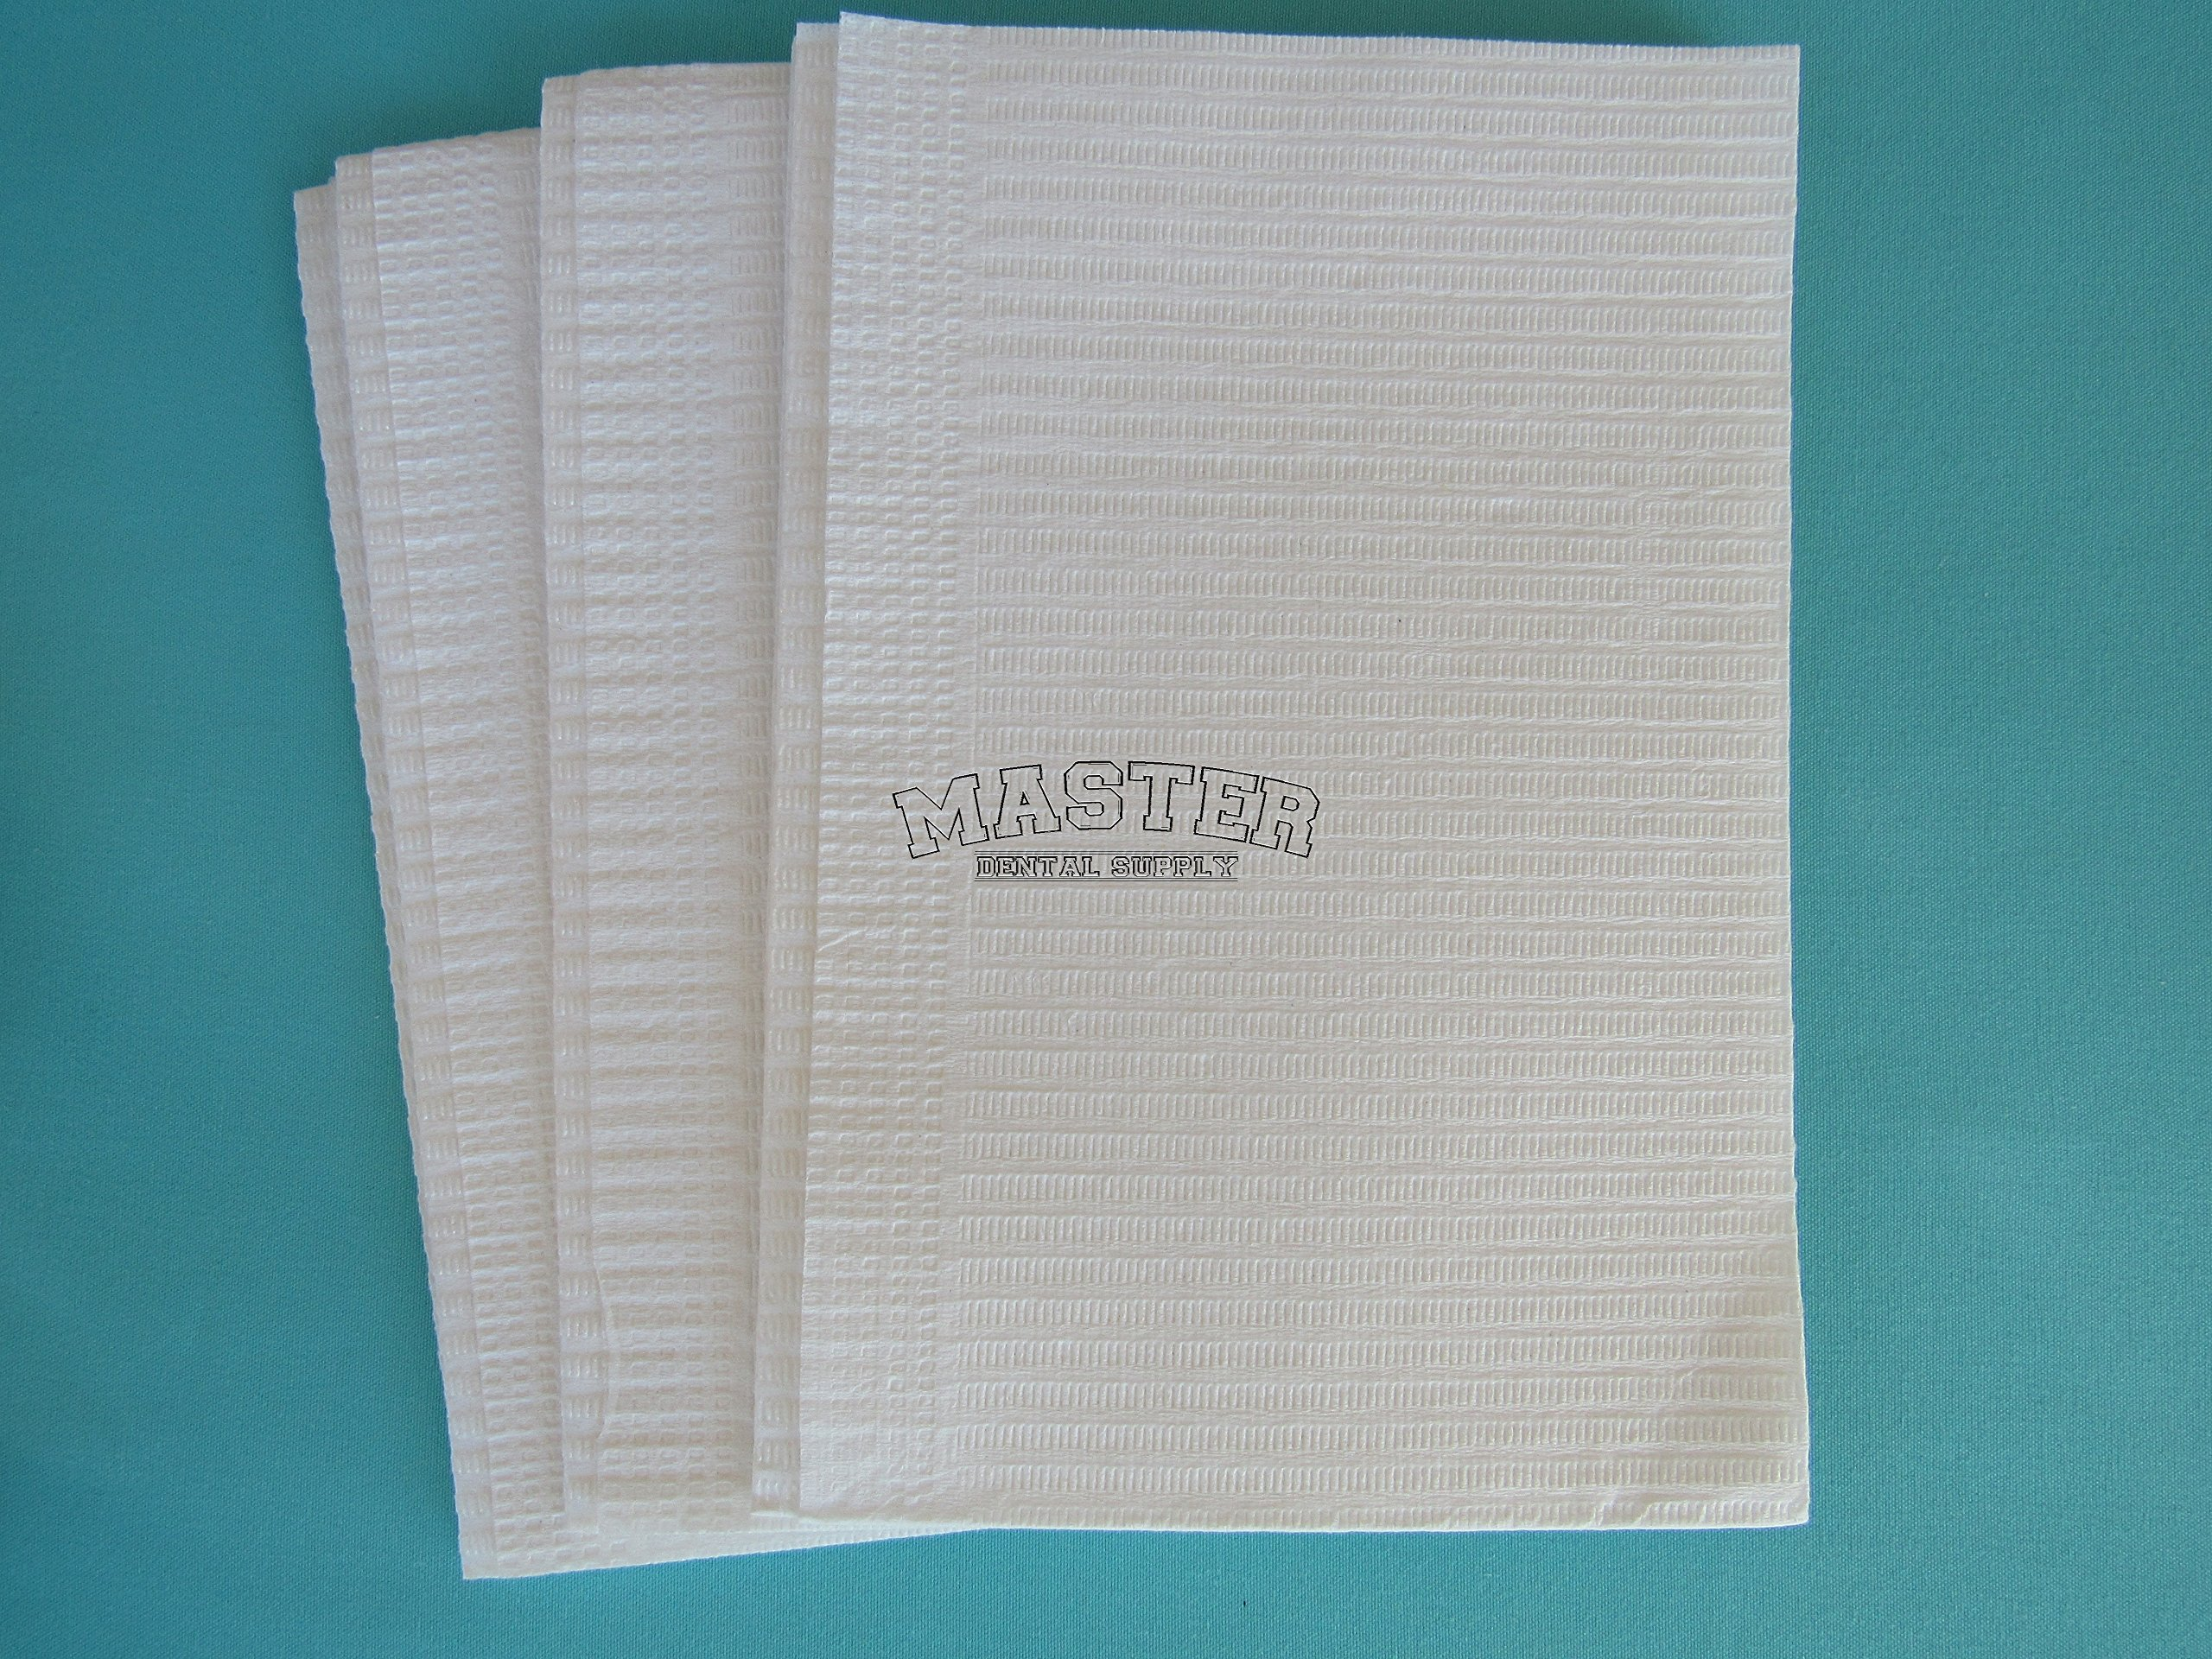 Disposable Patient Bibs Dental Tissue TattooTowels 500 Pcs/Case WHITE Color 2 + 1 Ply Poly Waterproof 13'' X 18''